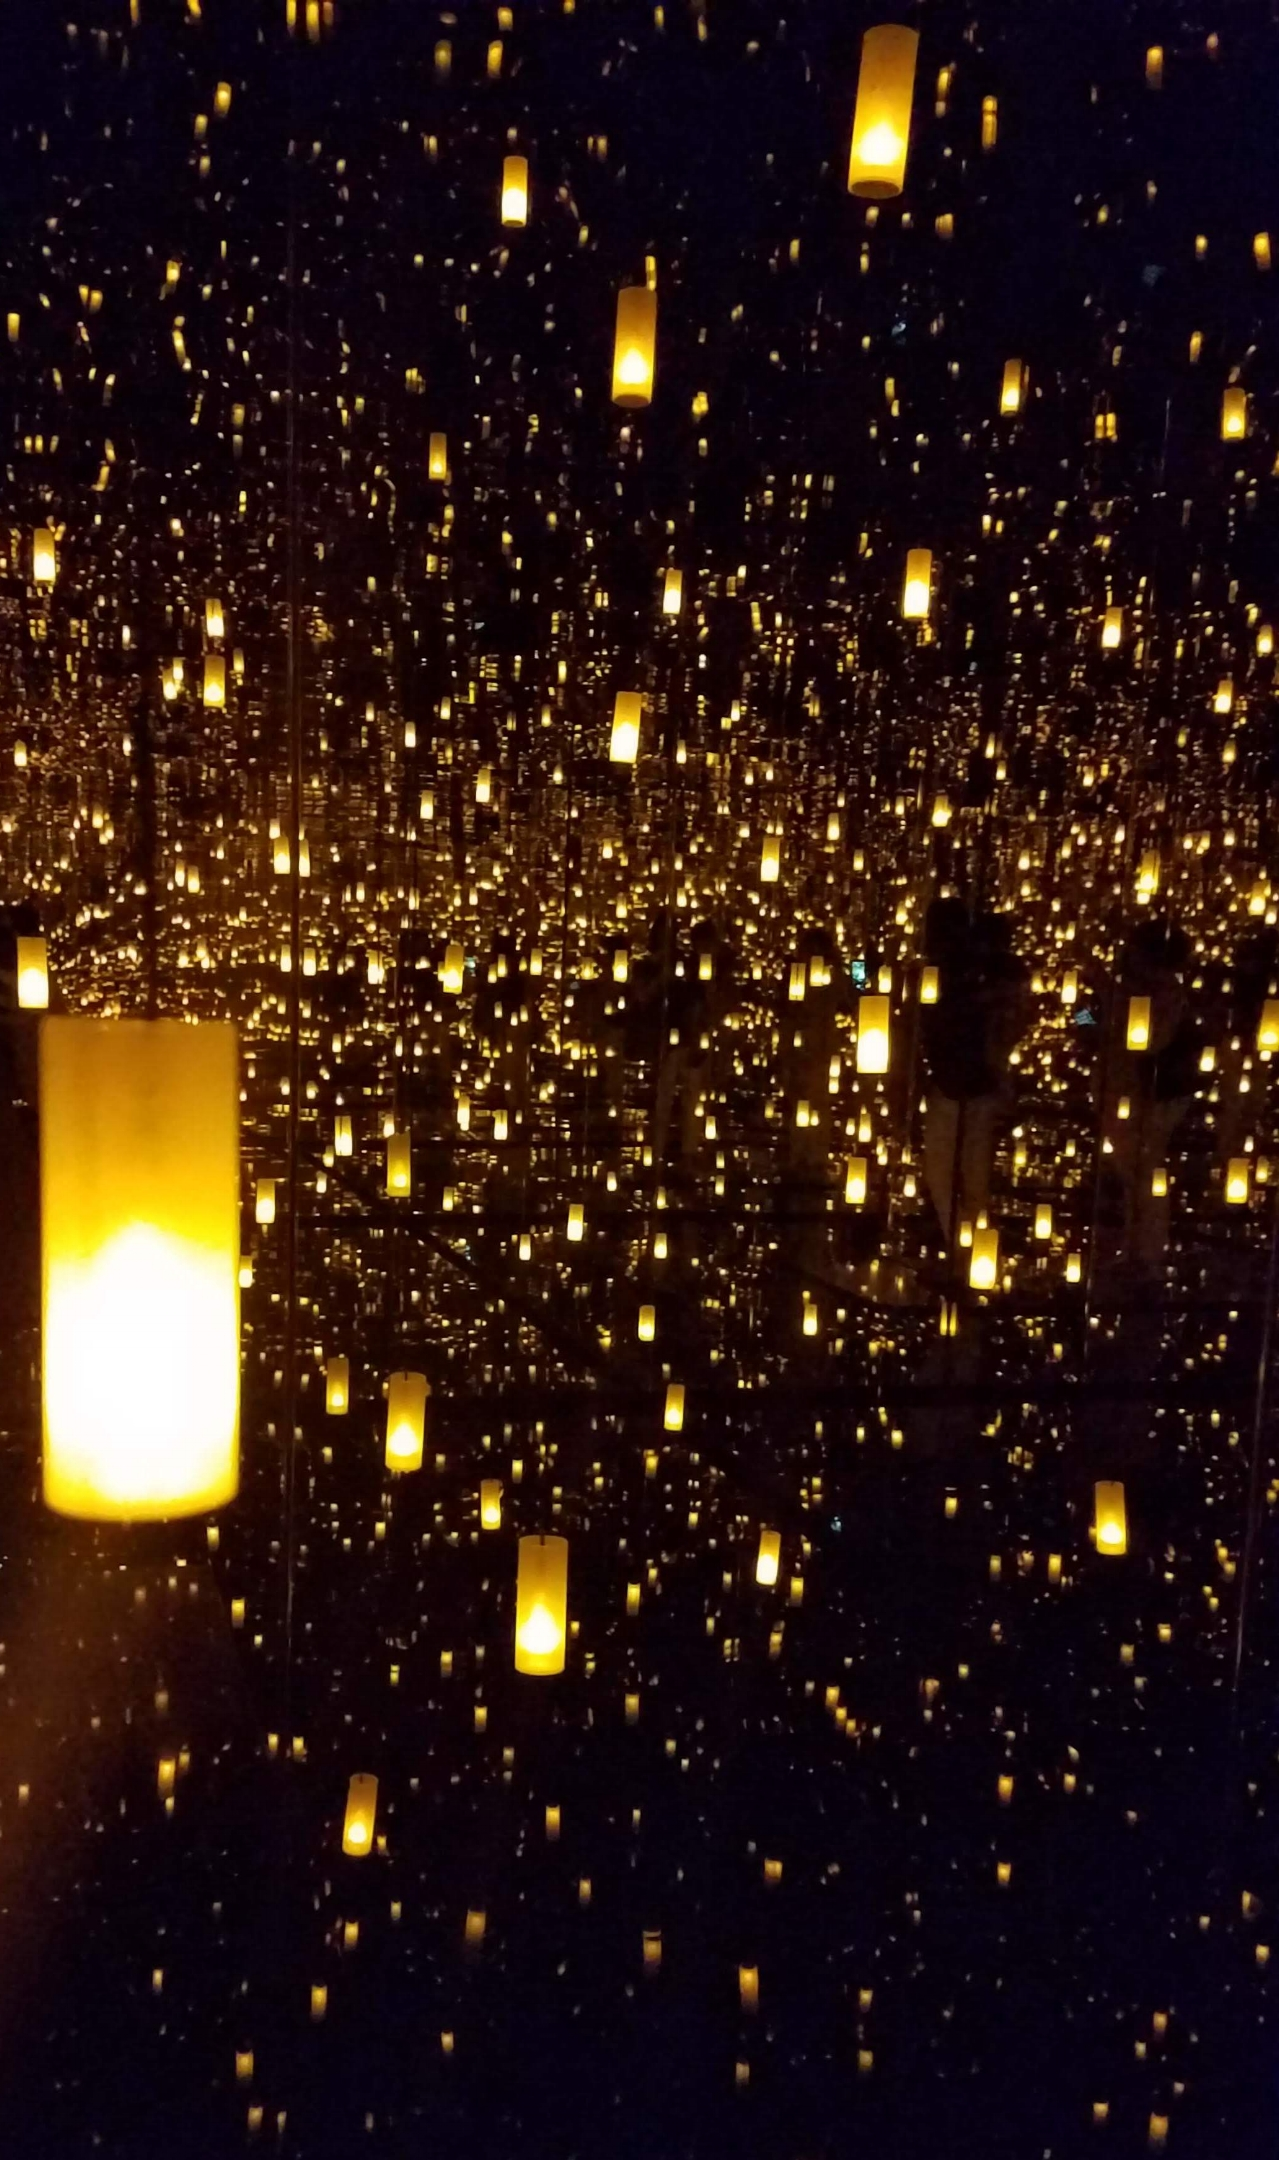 Yayoi Kusama's   Aftermath of Obliteration of Eternity